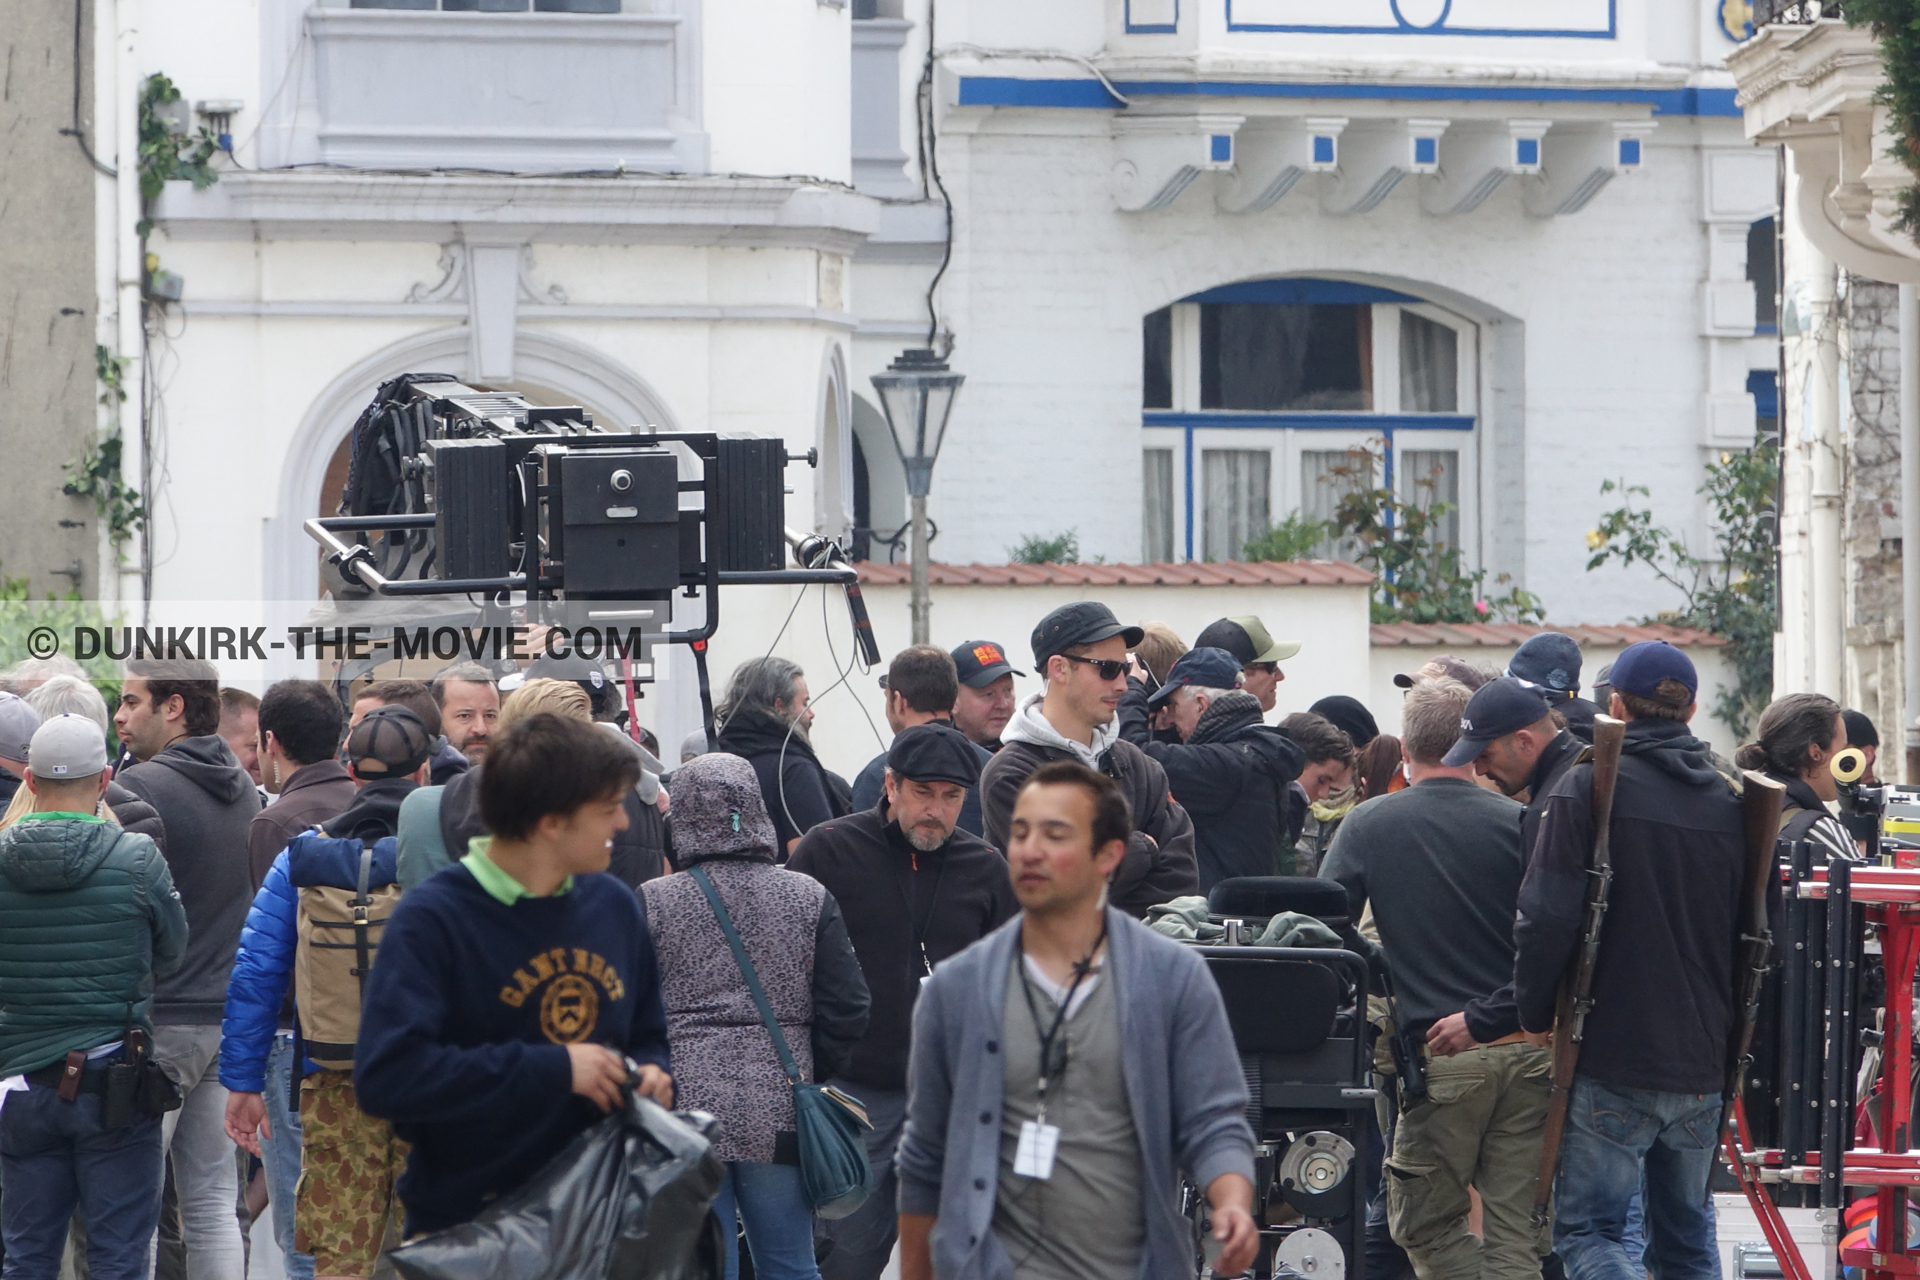 Picture with Belle Rade street, technical team,  from behind the scene of the Dunkirk movie by Nolan